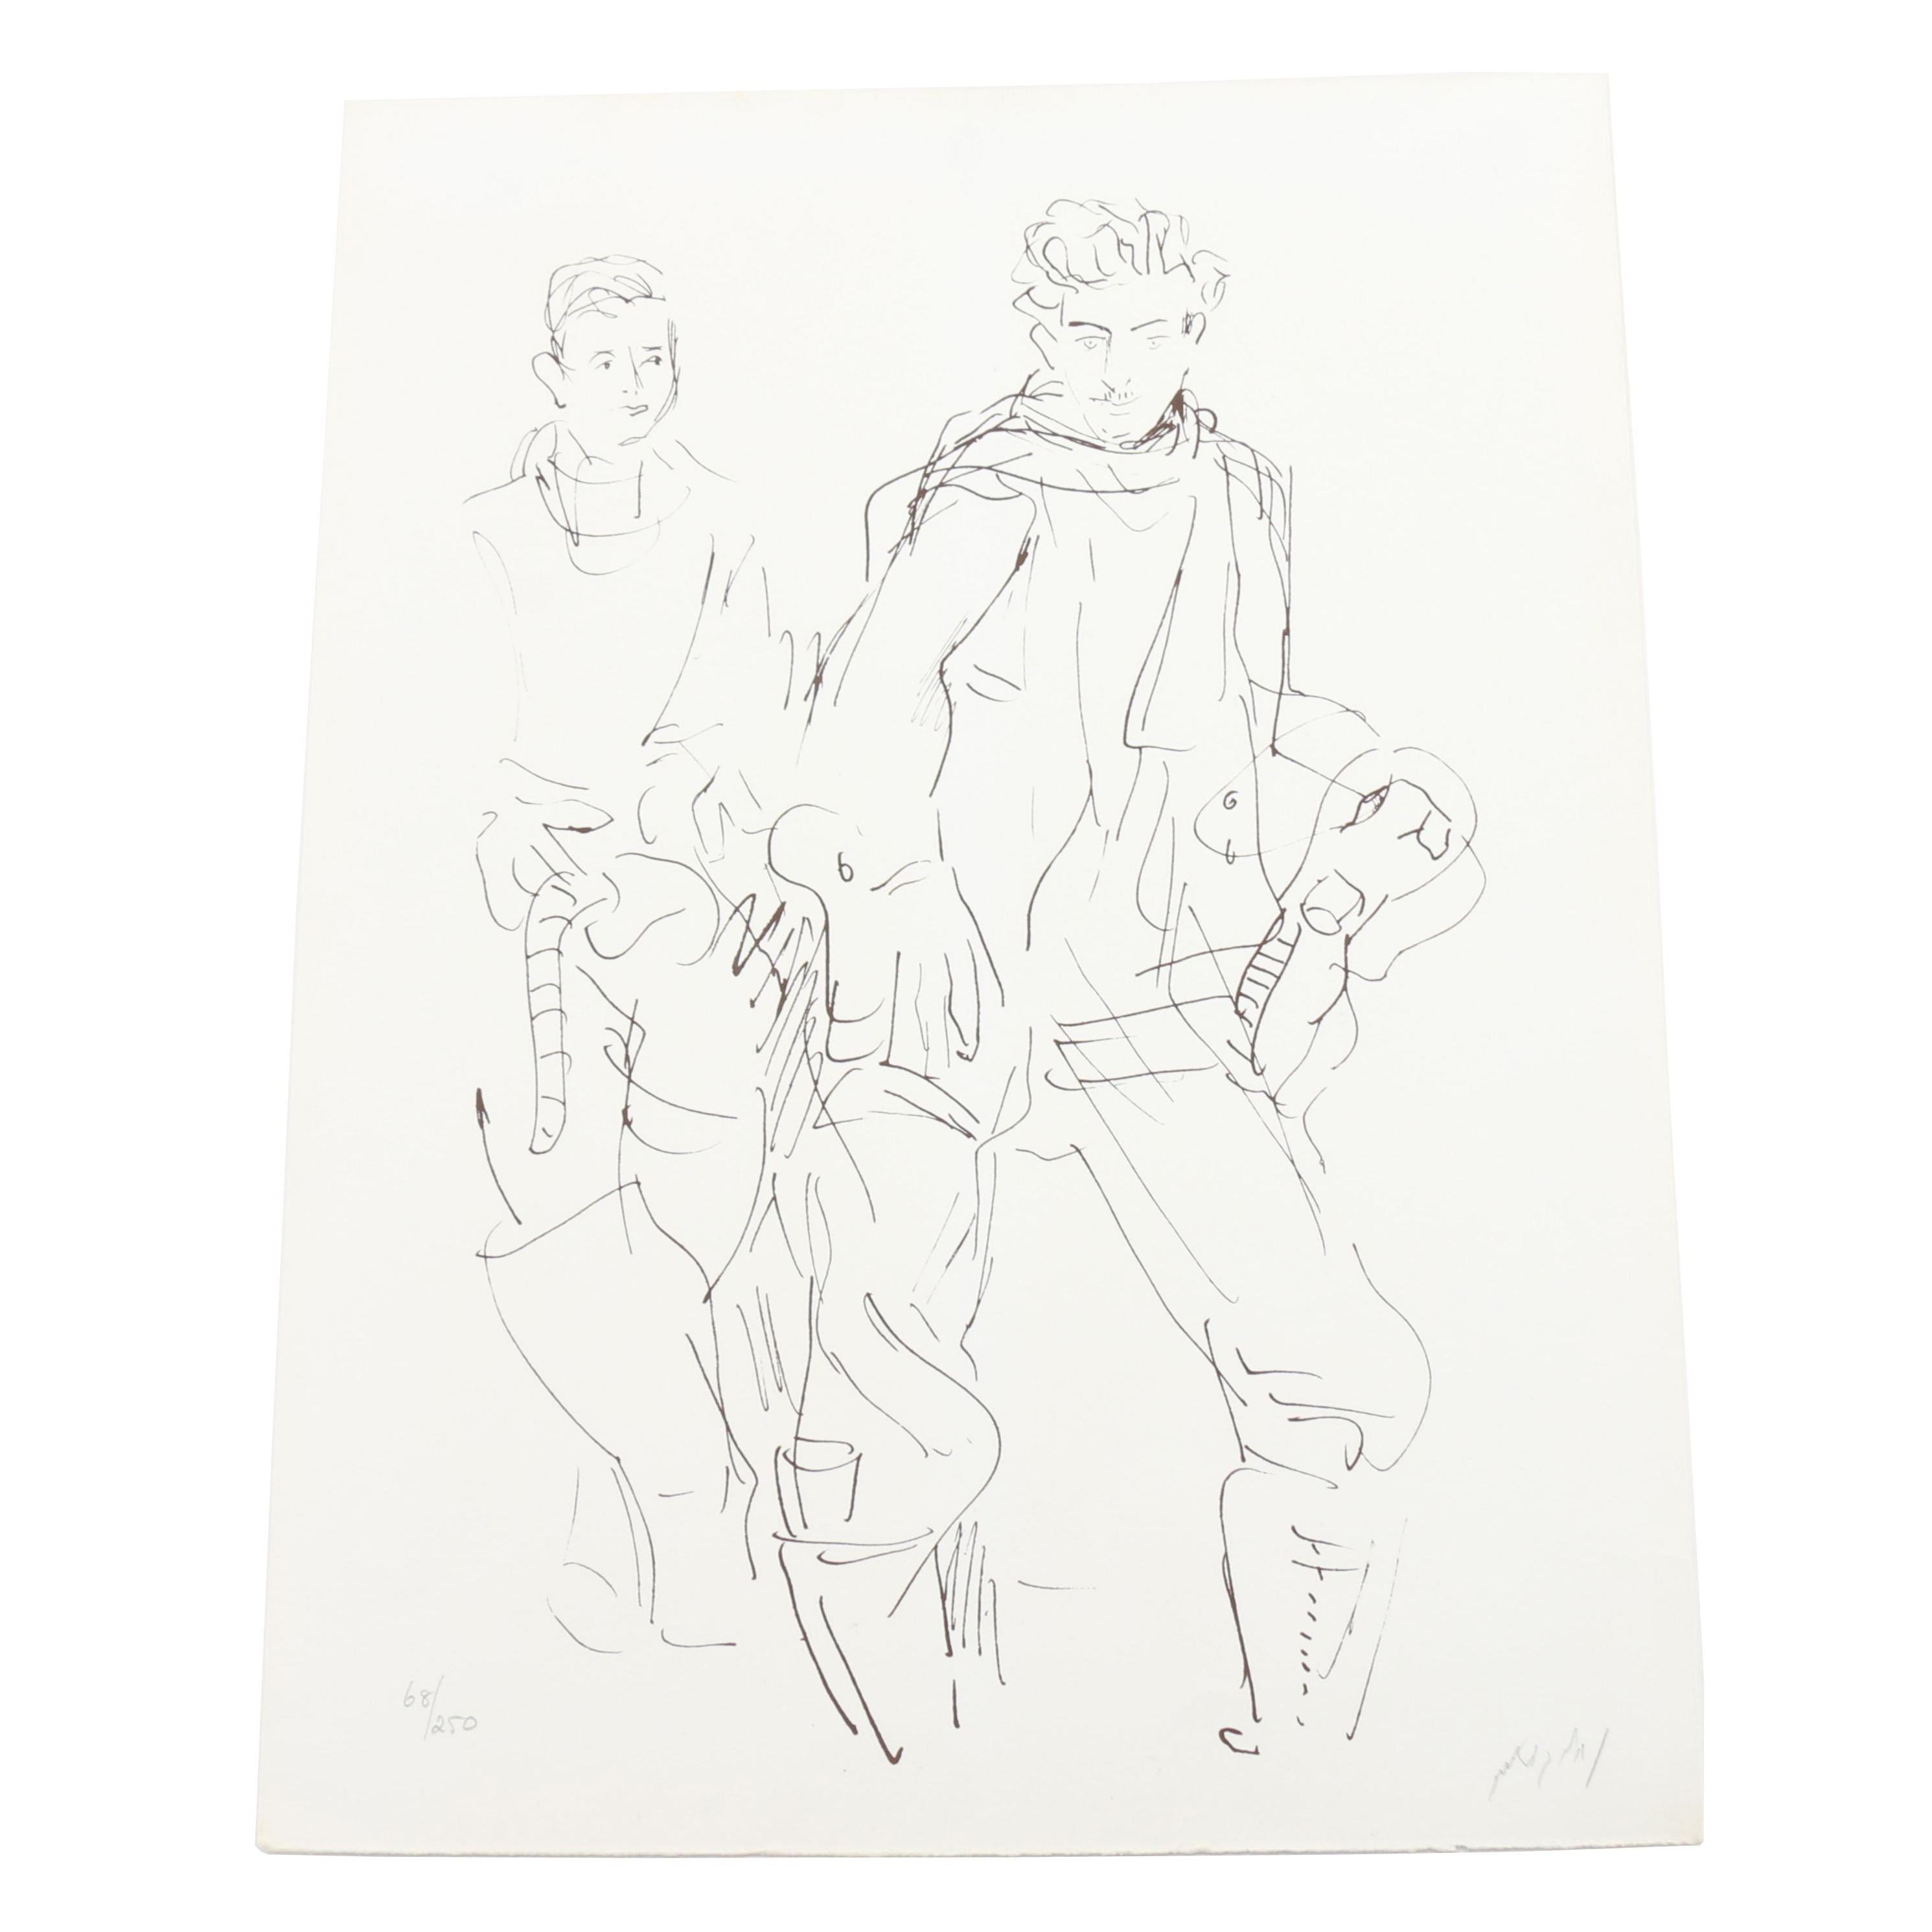 Limited Edition Lithograph of Two Men